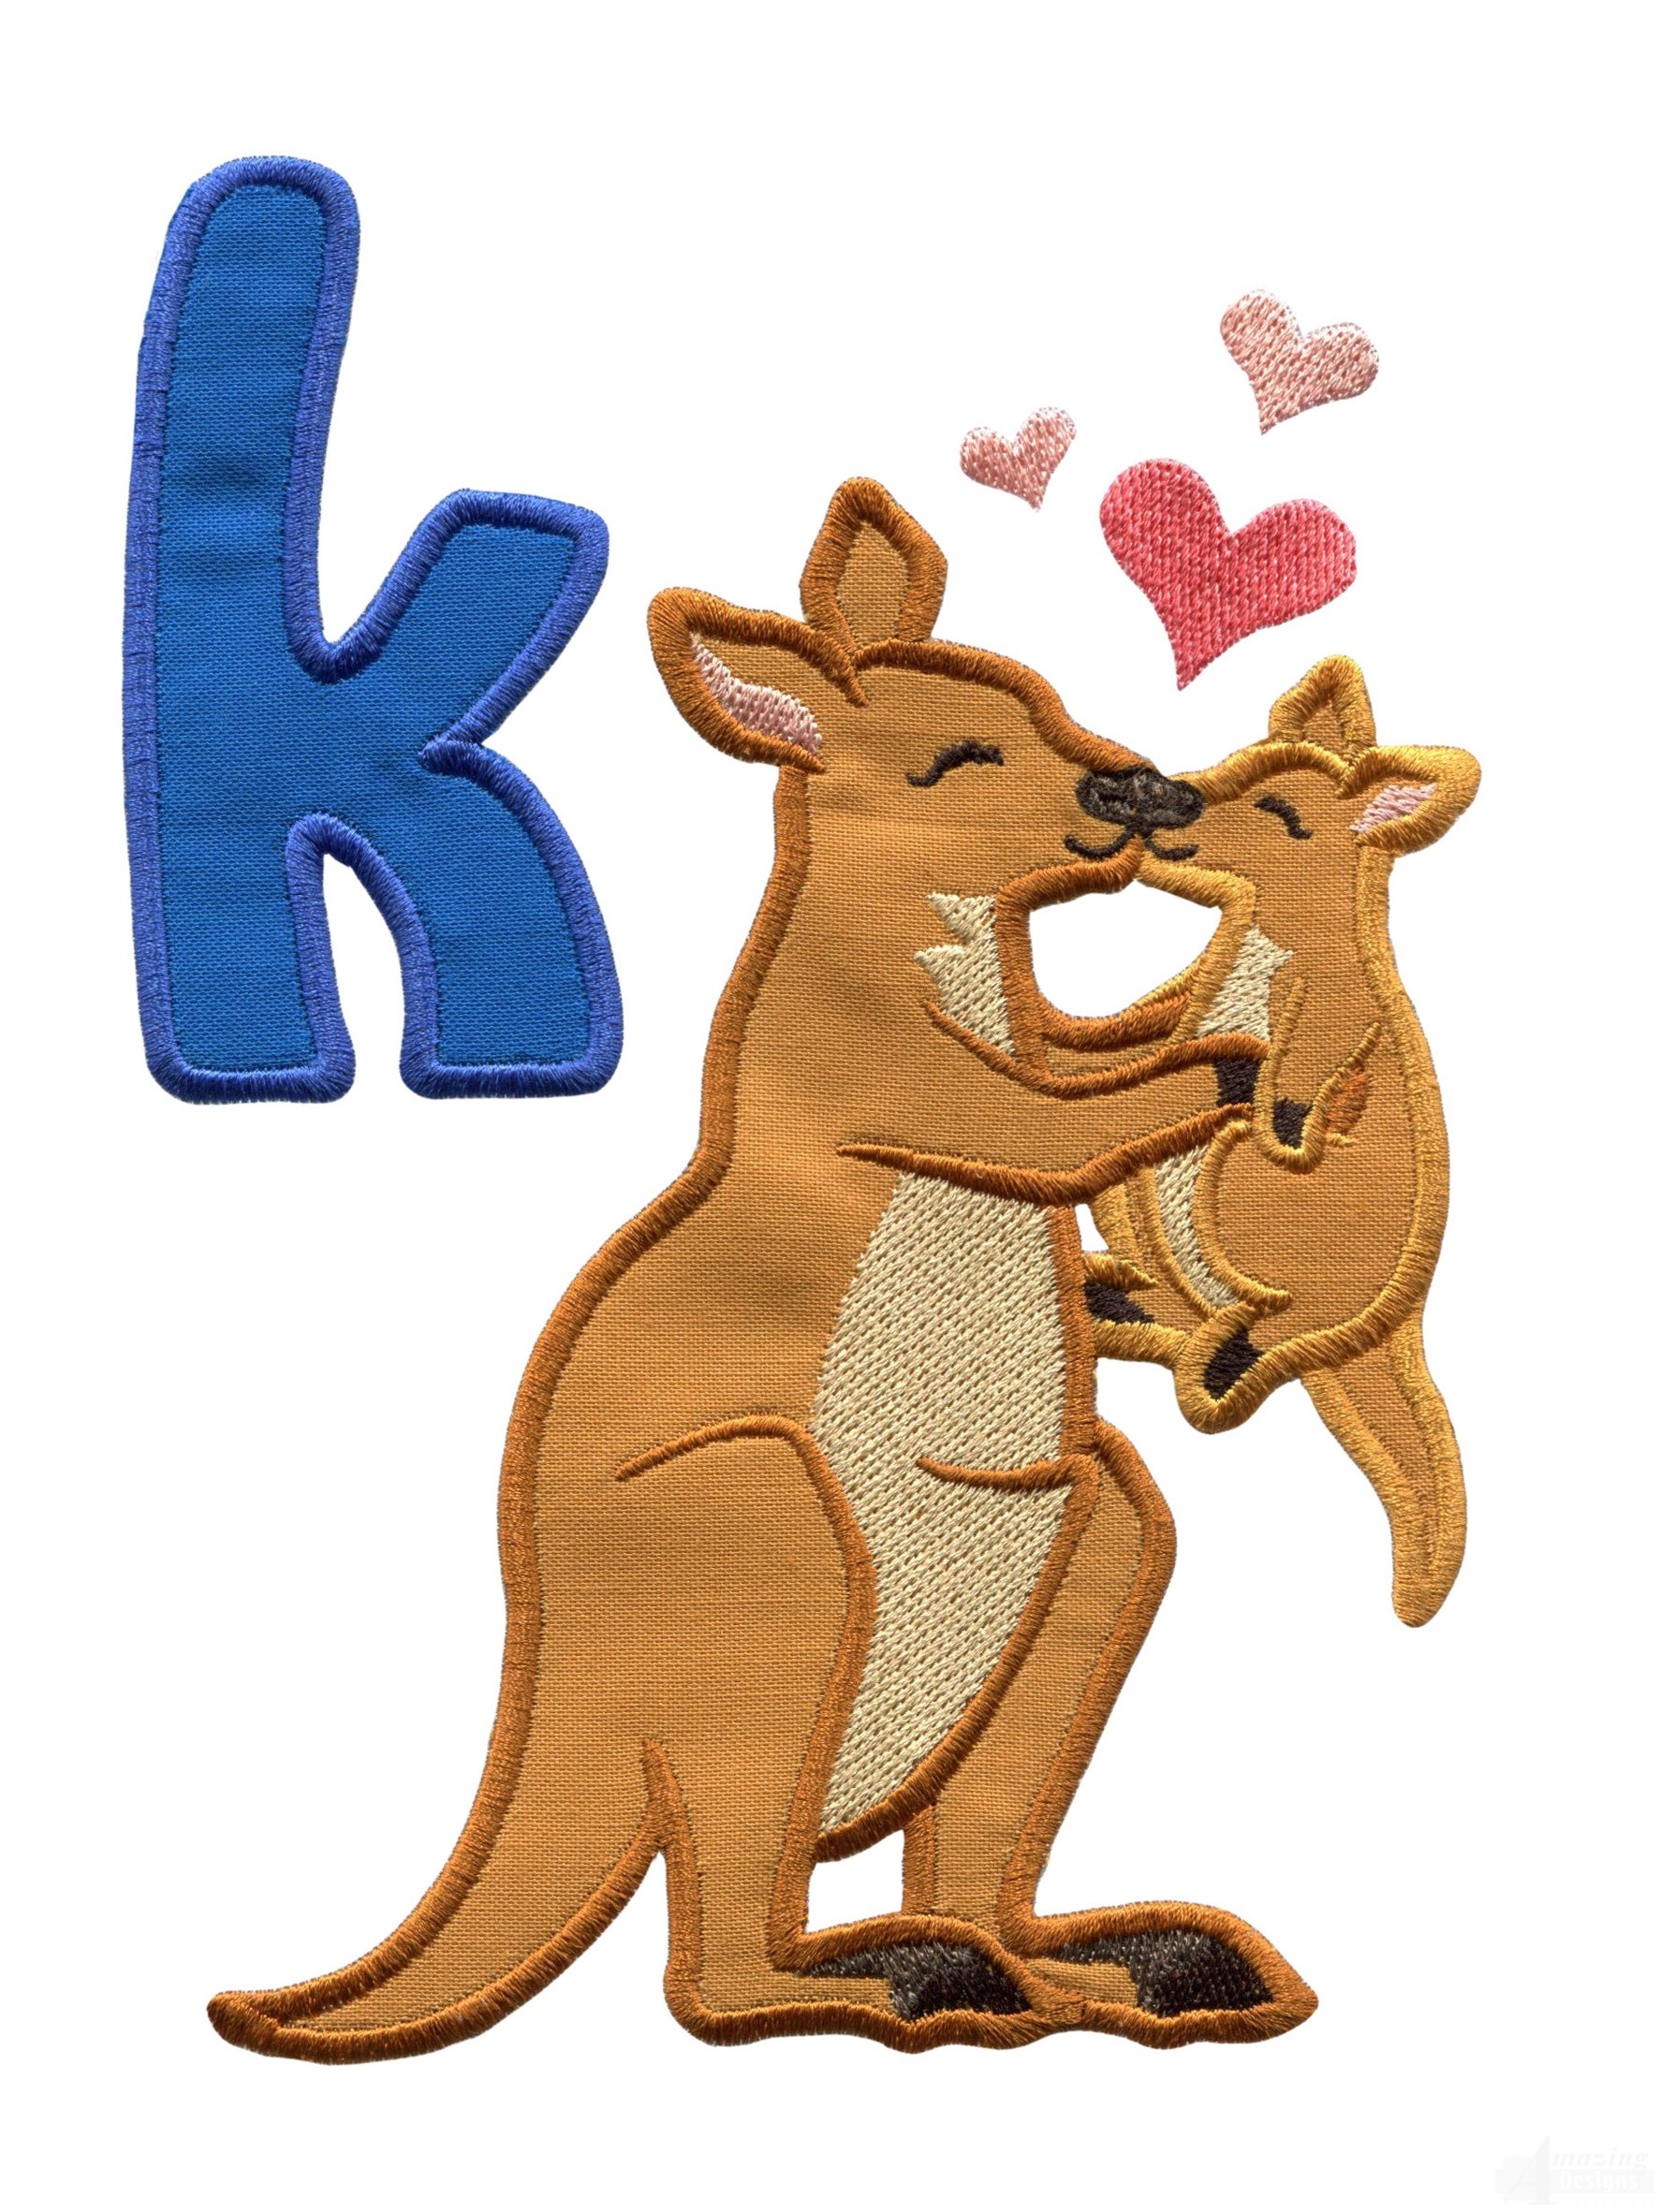 applique k kangaroo kiss embroidery design